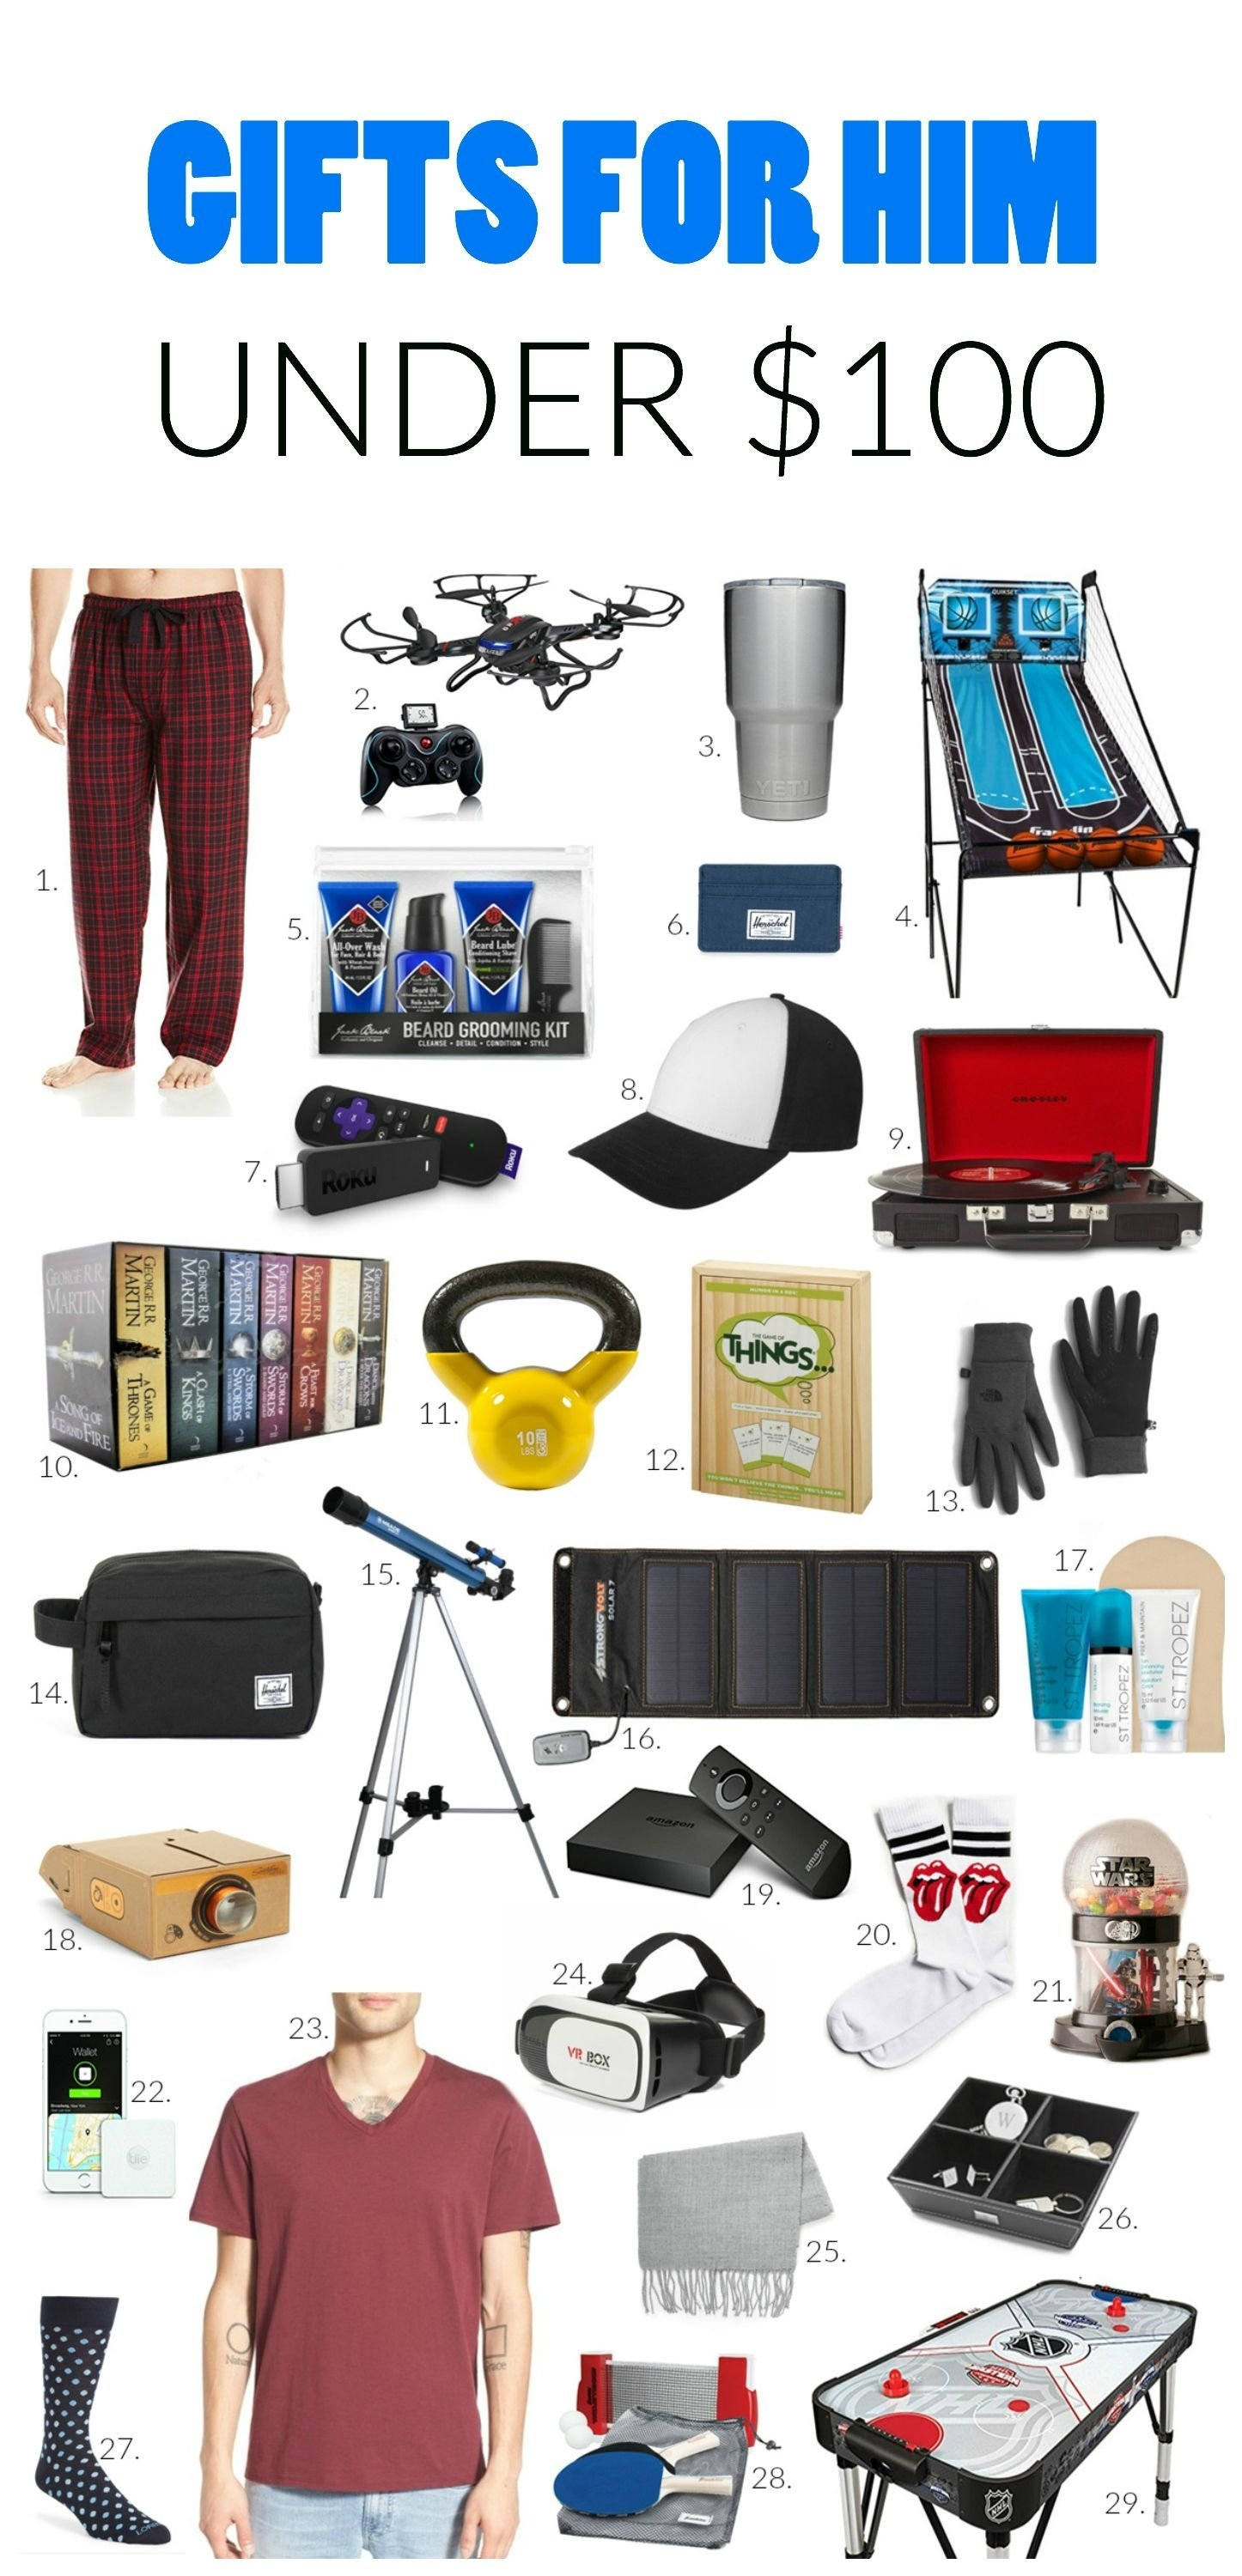 10 Spectacular Cool Birthday Gift Ideas For Guys gift ideas for him under 100 dads unique and gift